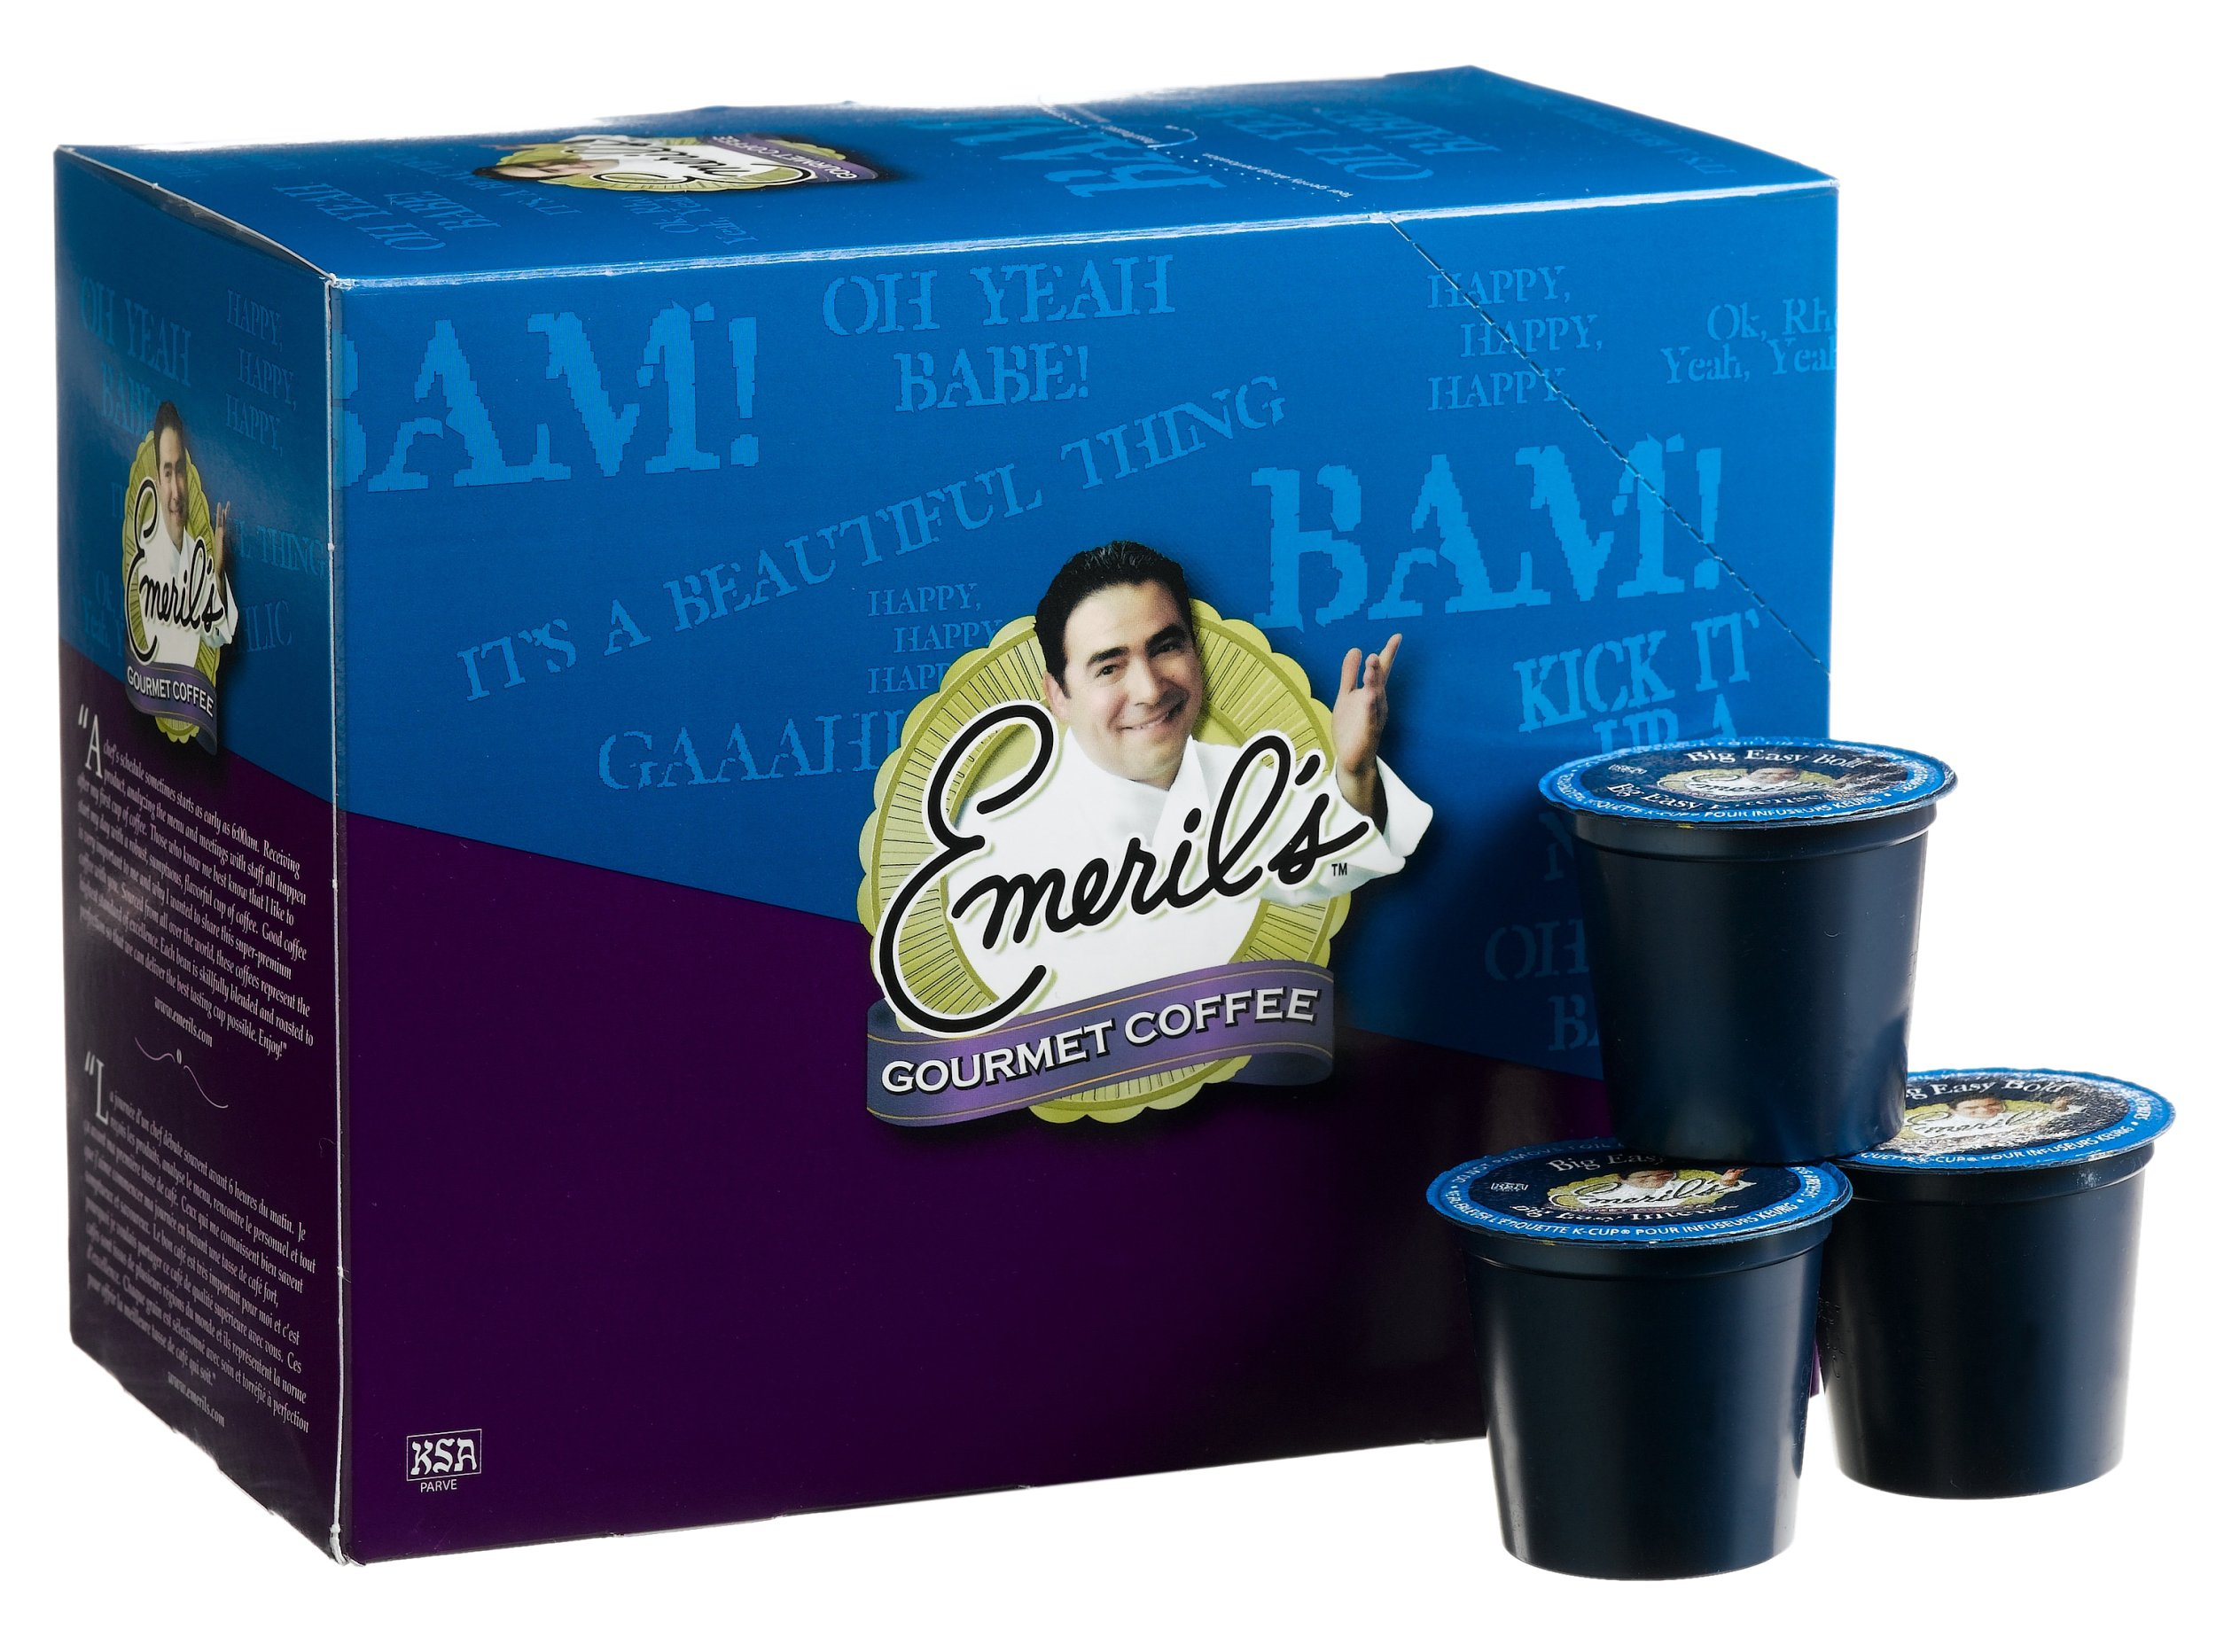 Emeril's Big Easy Bold Coffee, 24-Count K-Cups for Keurig Brewers, 9.90 oz, (Pack of 2)